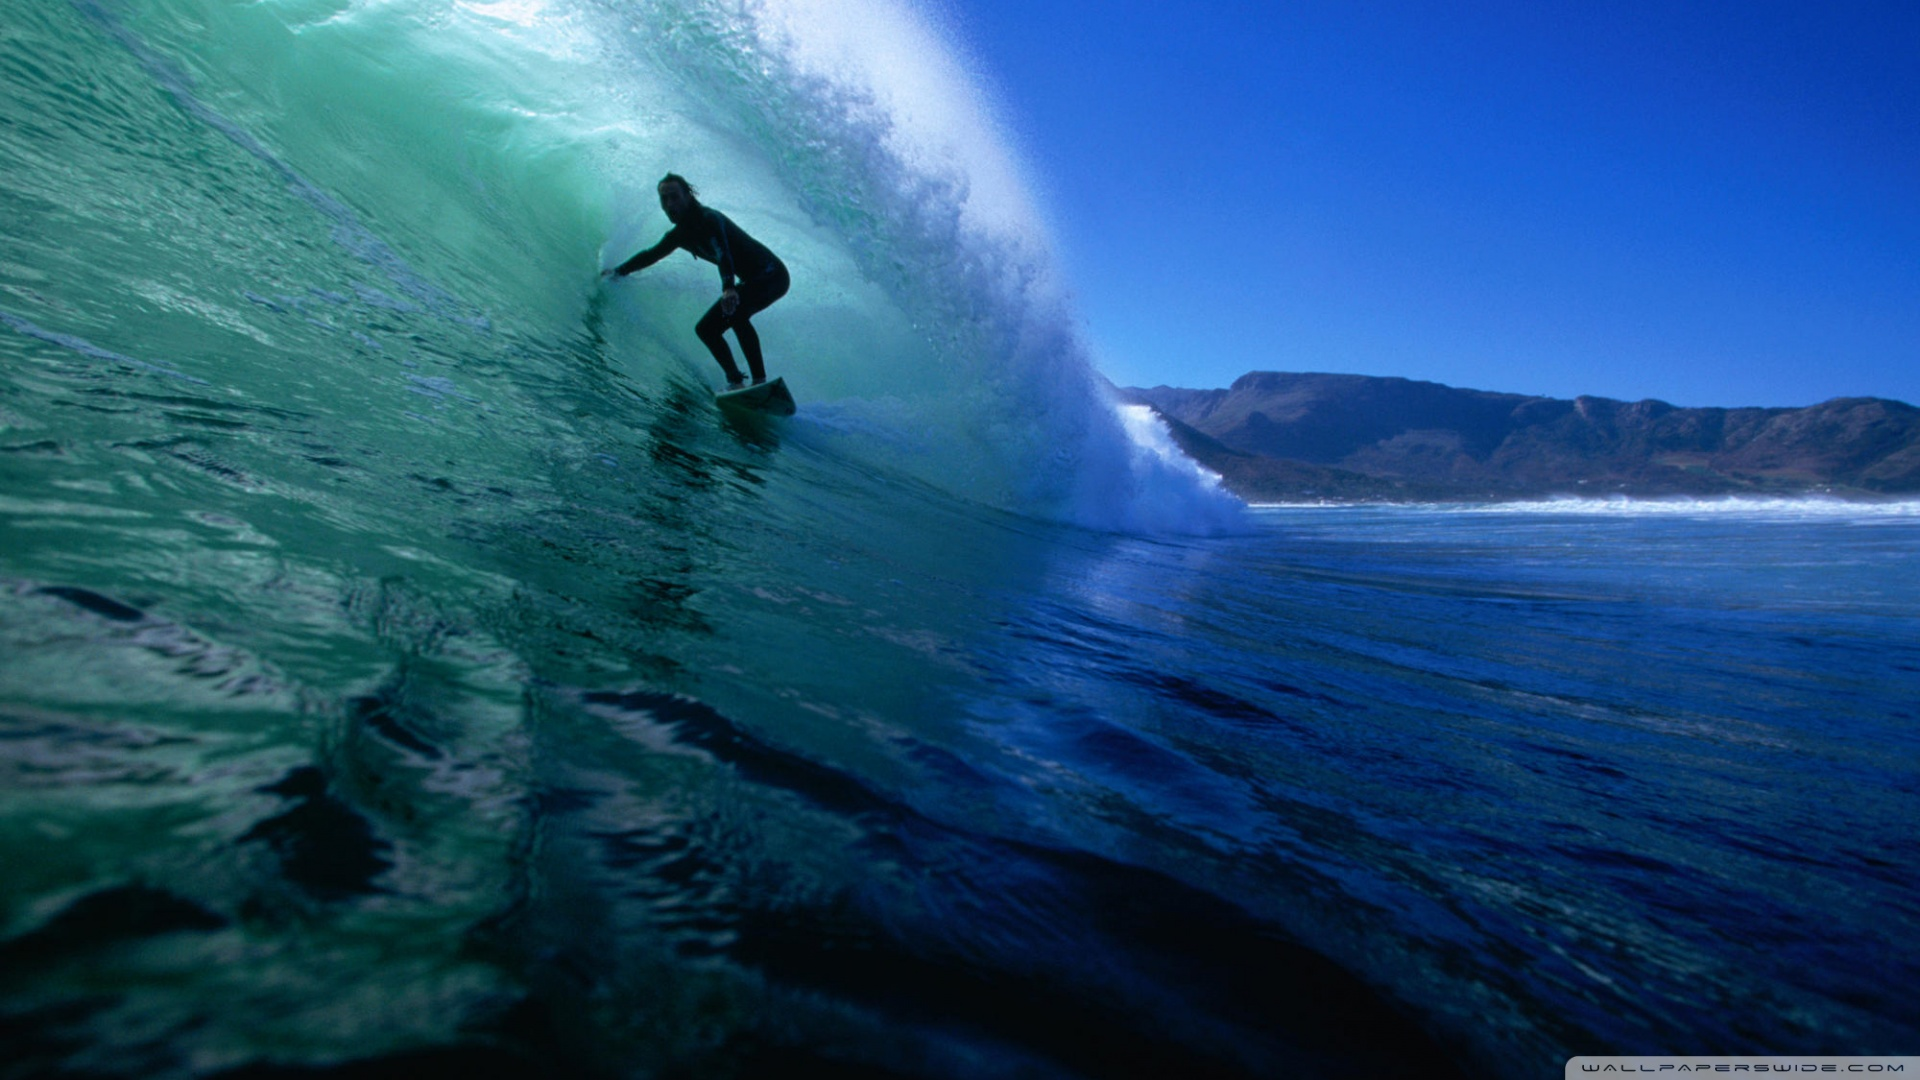 Image Surf wallpaper HD 0015   Album Surf Wallpaper wallpapers 1920x1080